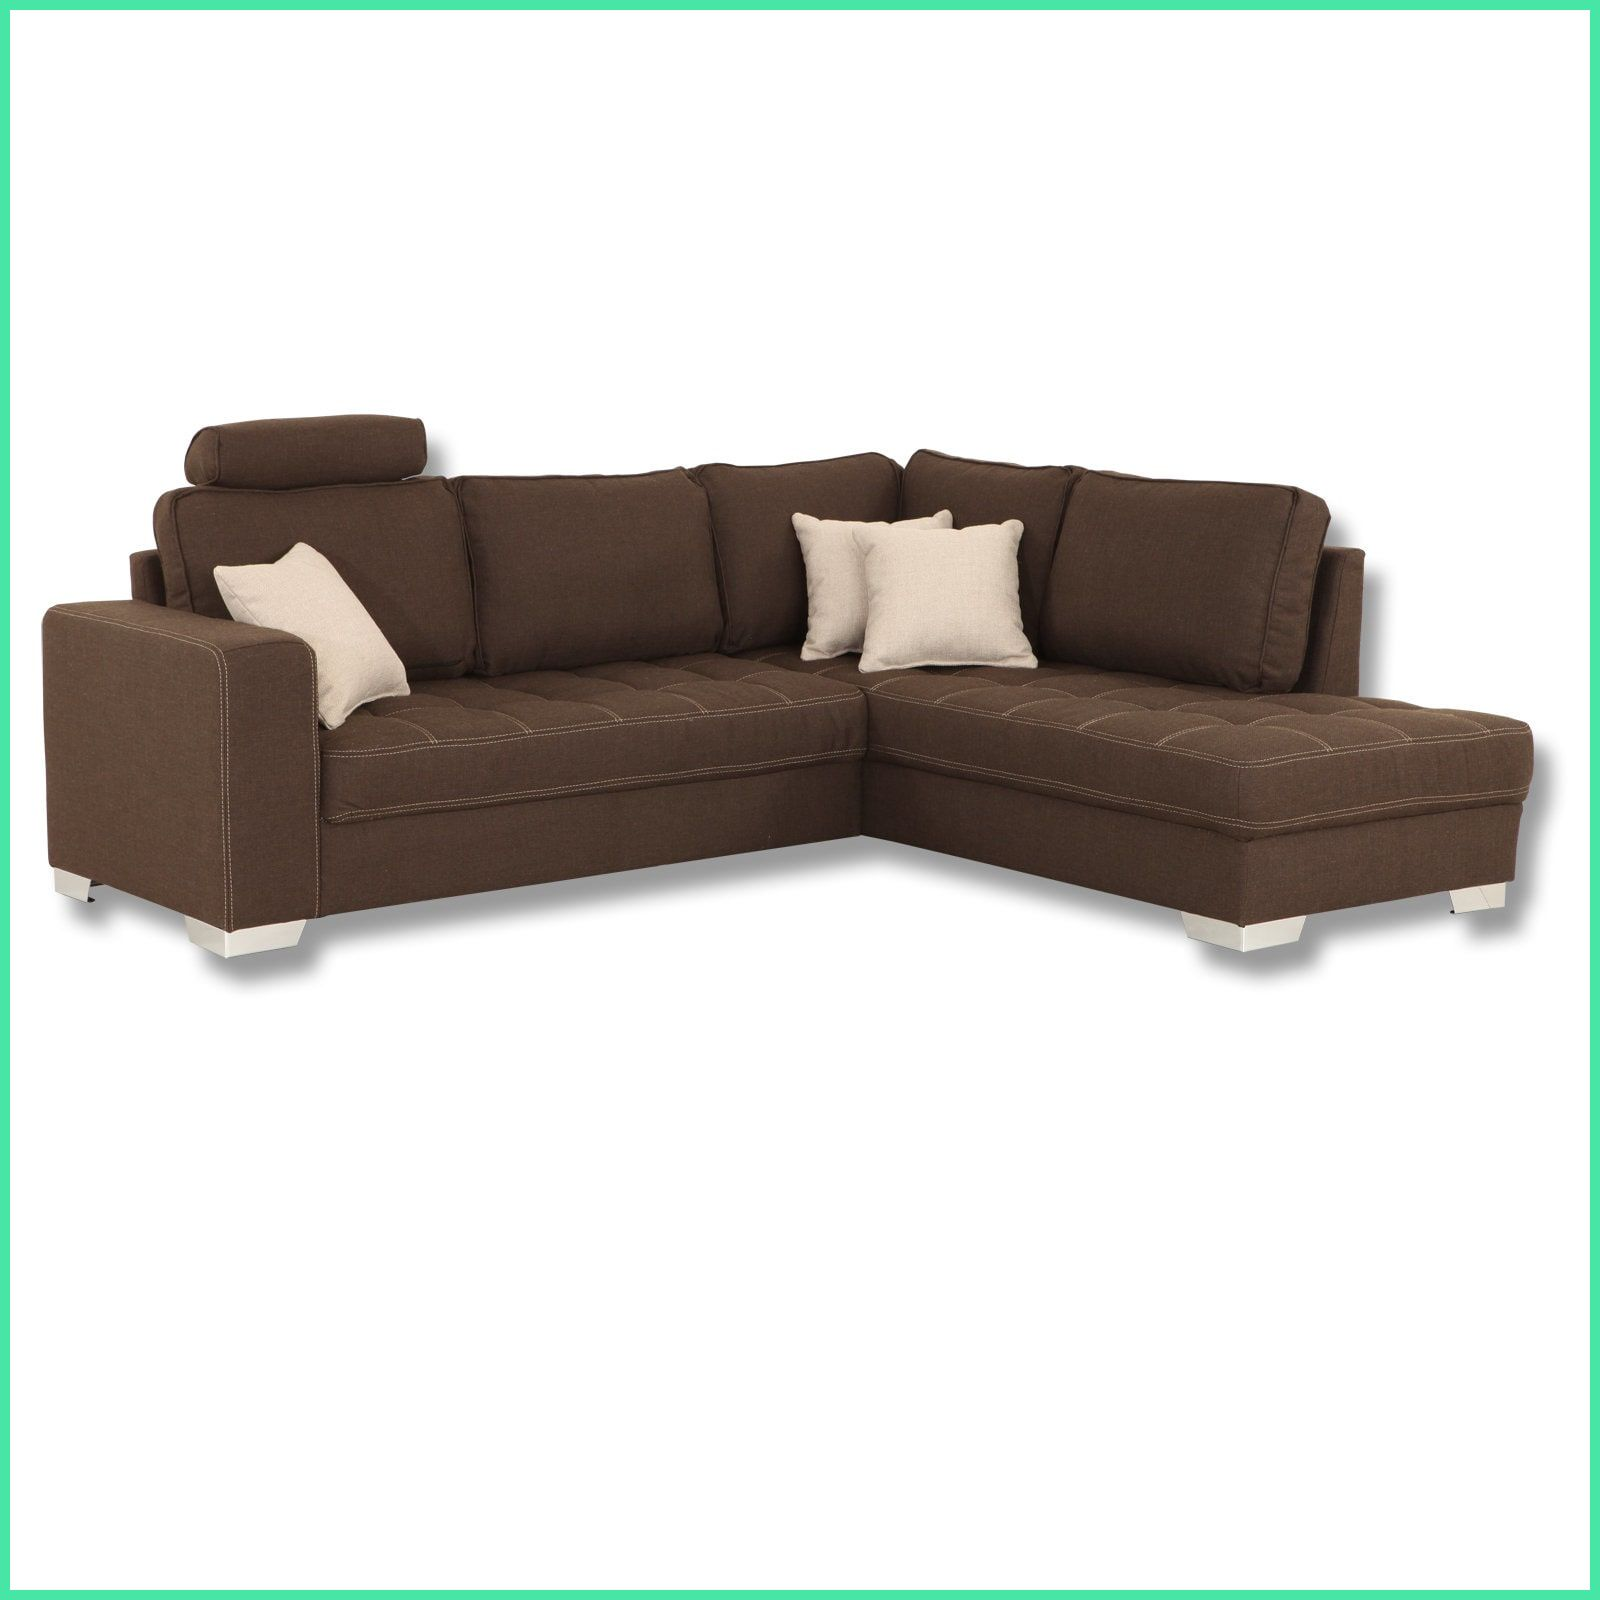 14 Sauber Sofa Bei Roller Modern Couch Couch Sofa Couch